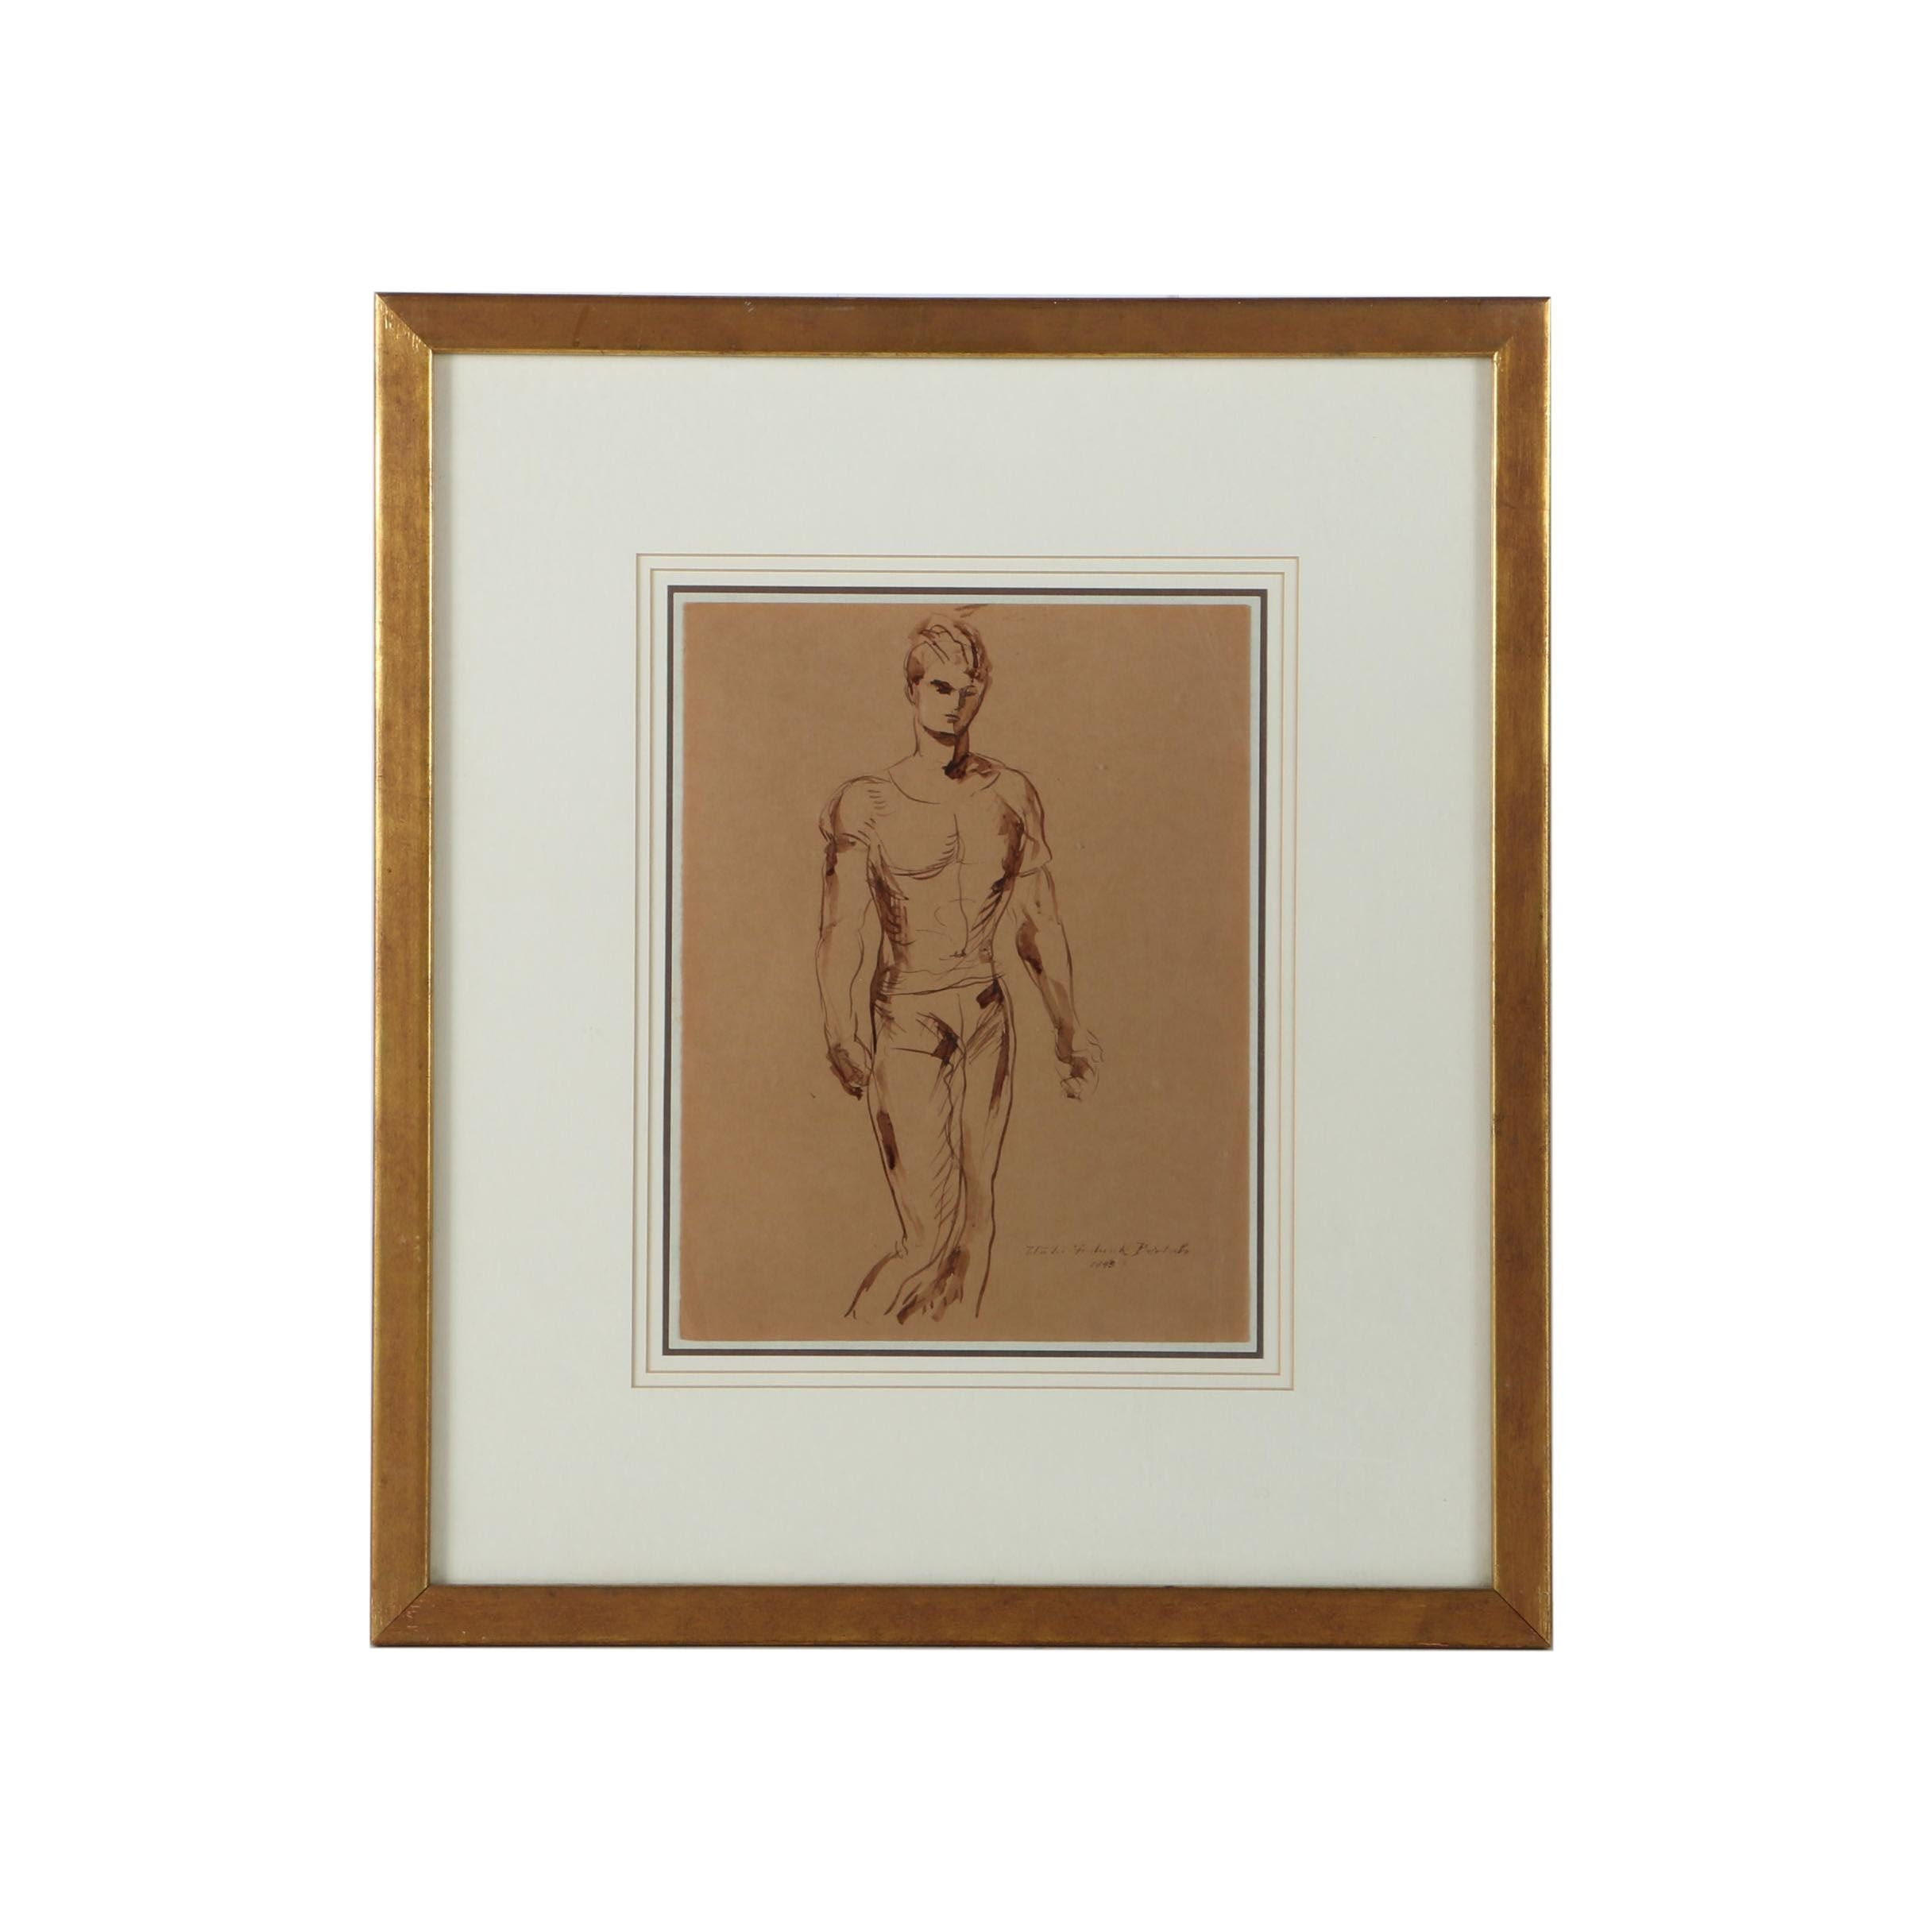 Walter Frederick Bartsch 1943 Pen and Ink Drawing Male Figure